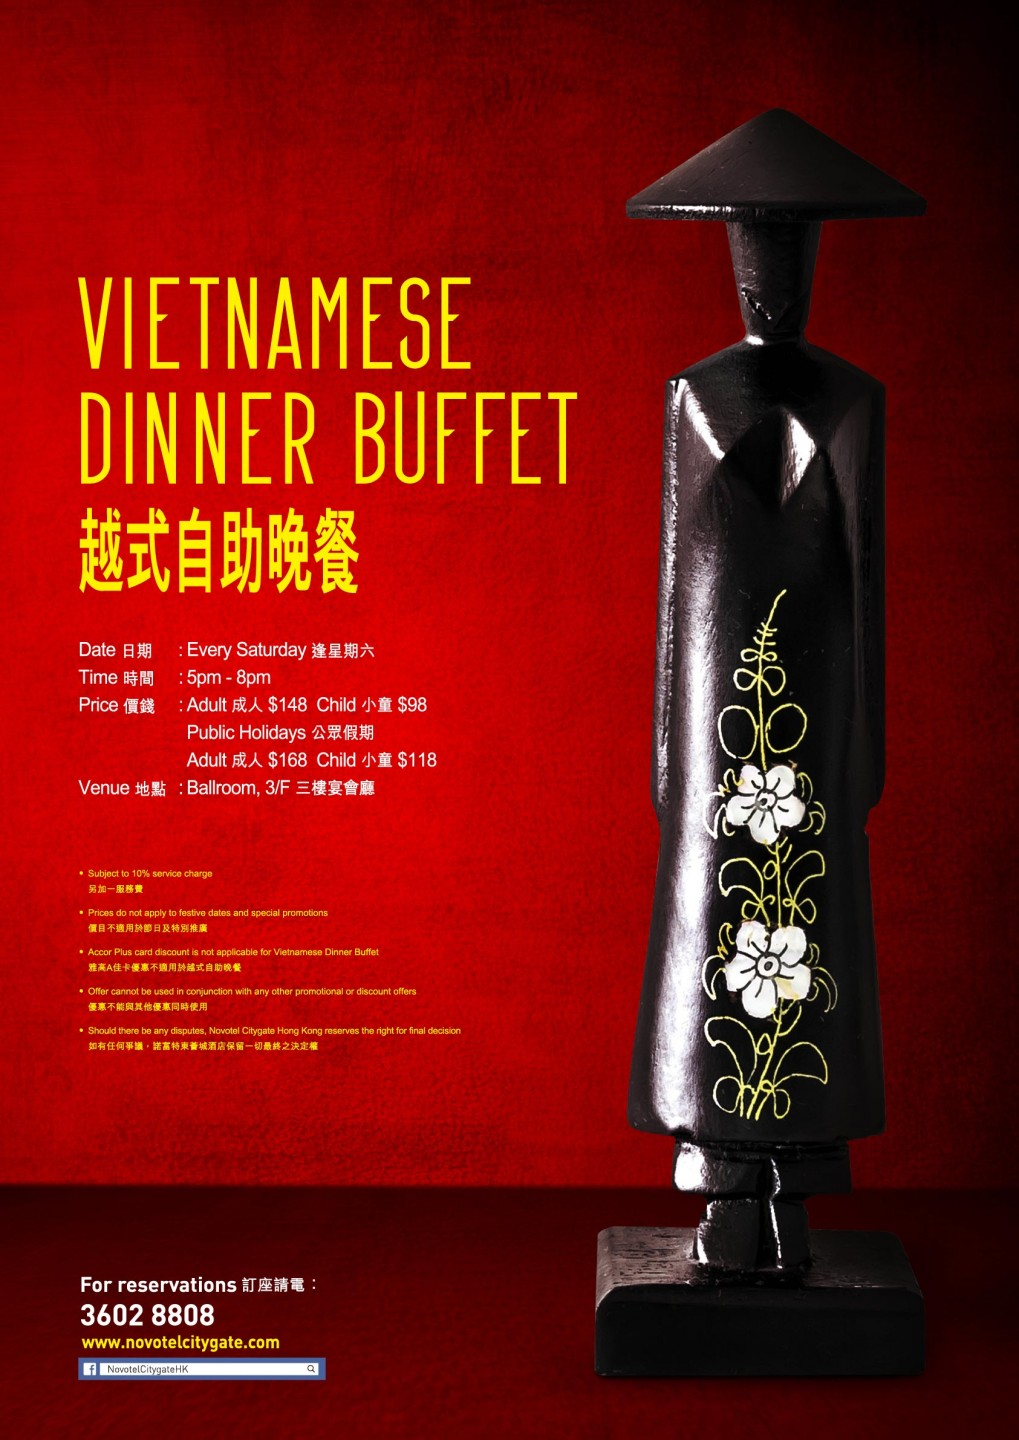 Vietnamese Dinner Buffet at Novotel Citygate Hong Kong in Tung Chung